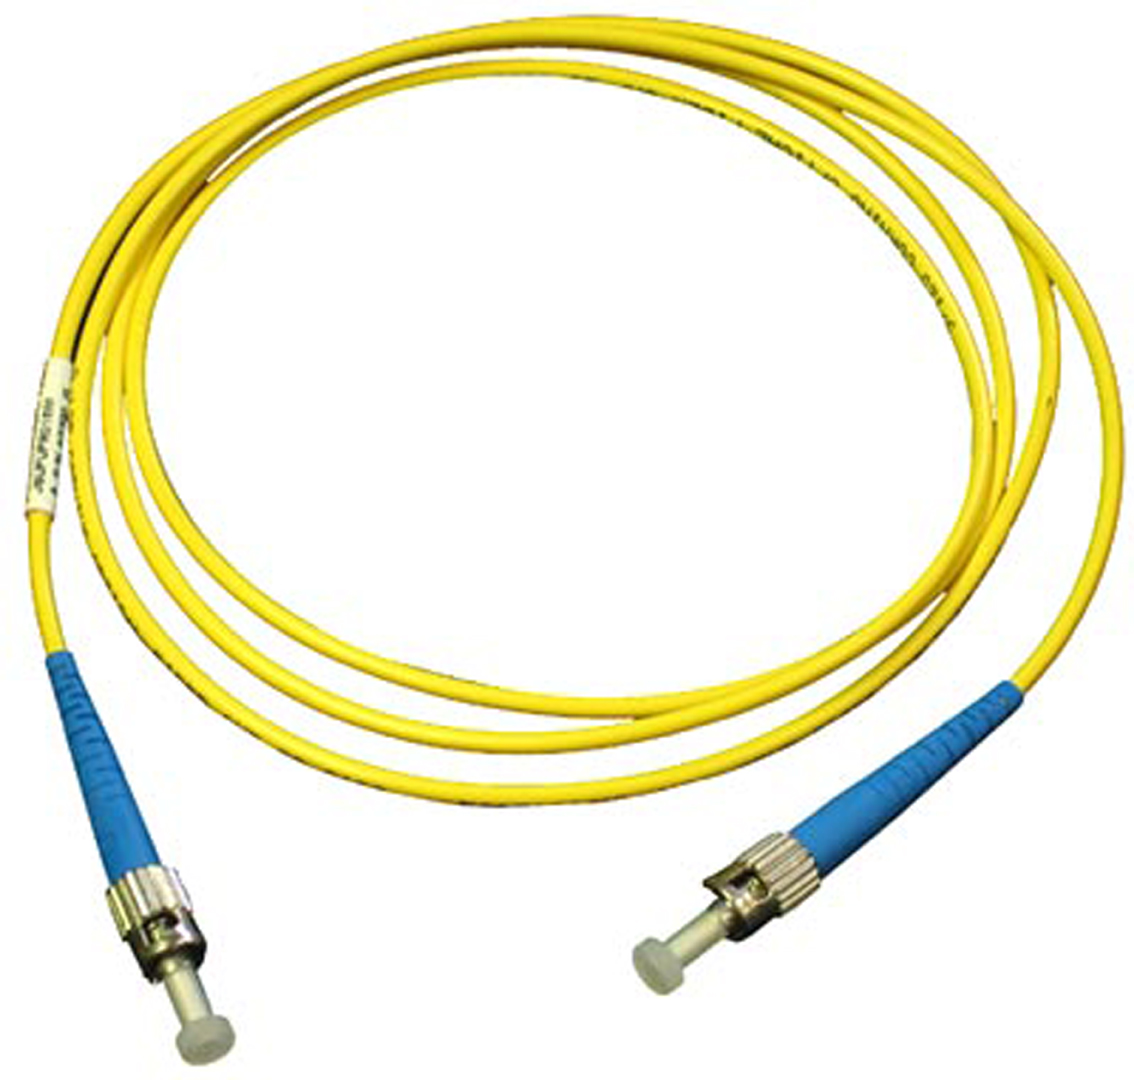 ST-ST fiber patch cord